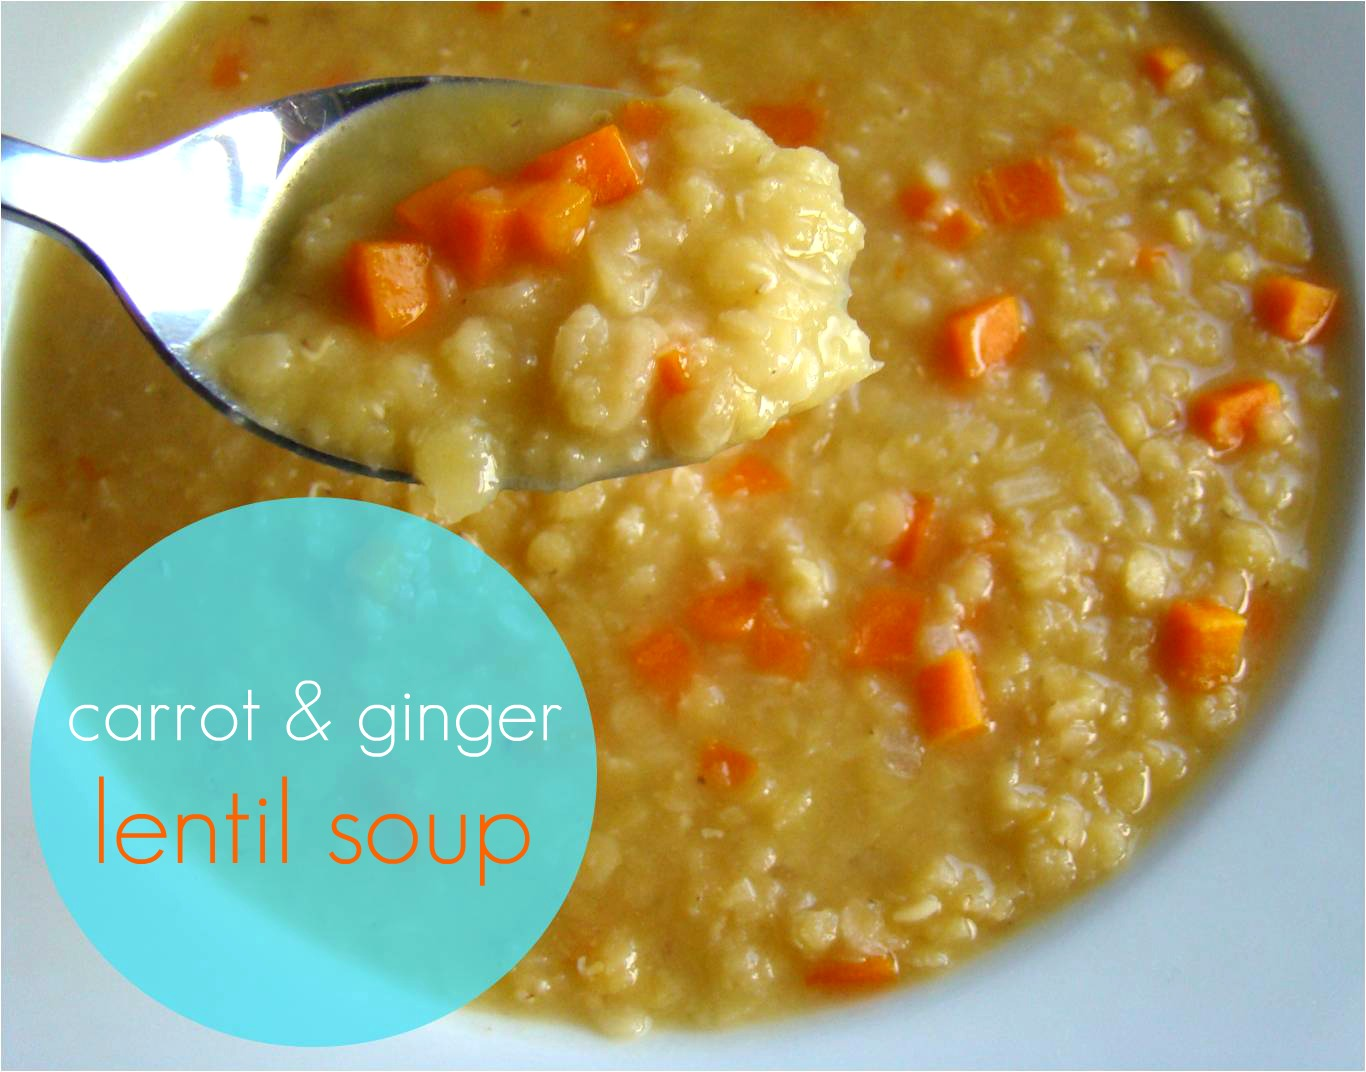 Family Feedbag: Carrot & ginger lentil soup